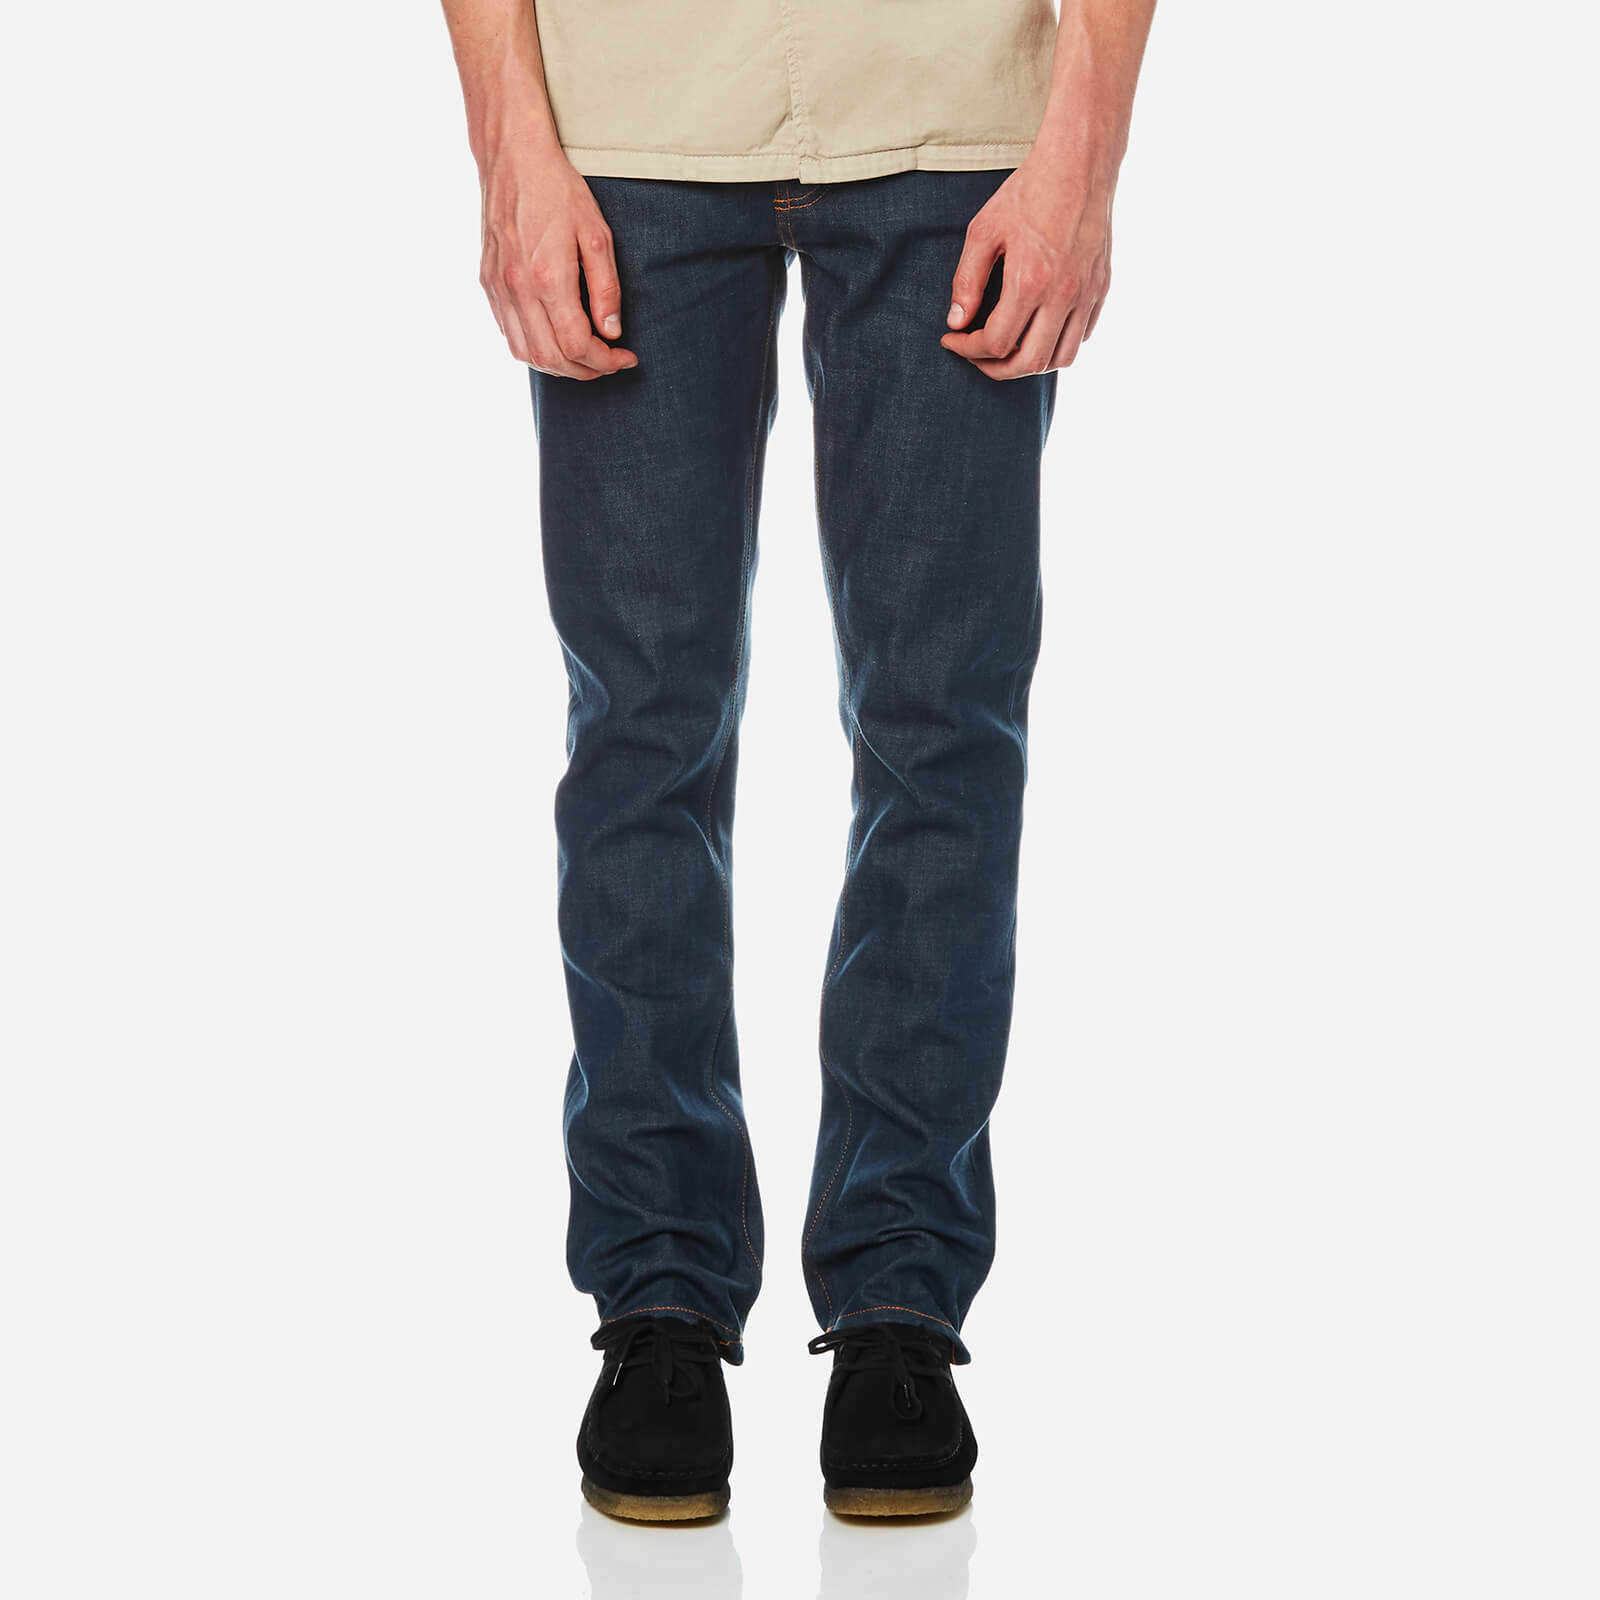 8889cab90e04 Nudie Jeans Men s Grim Tim Jeans - Dry Shiga Selvage - Free UK Delivery over  £50